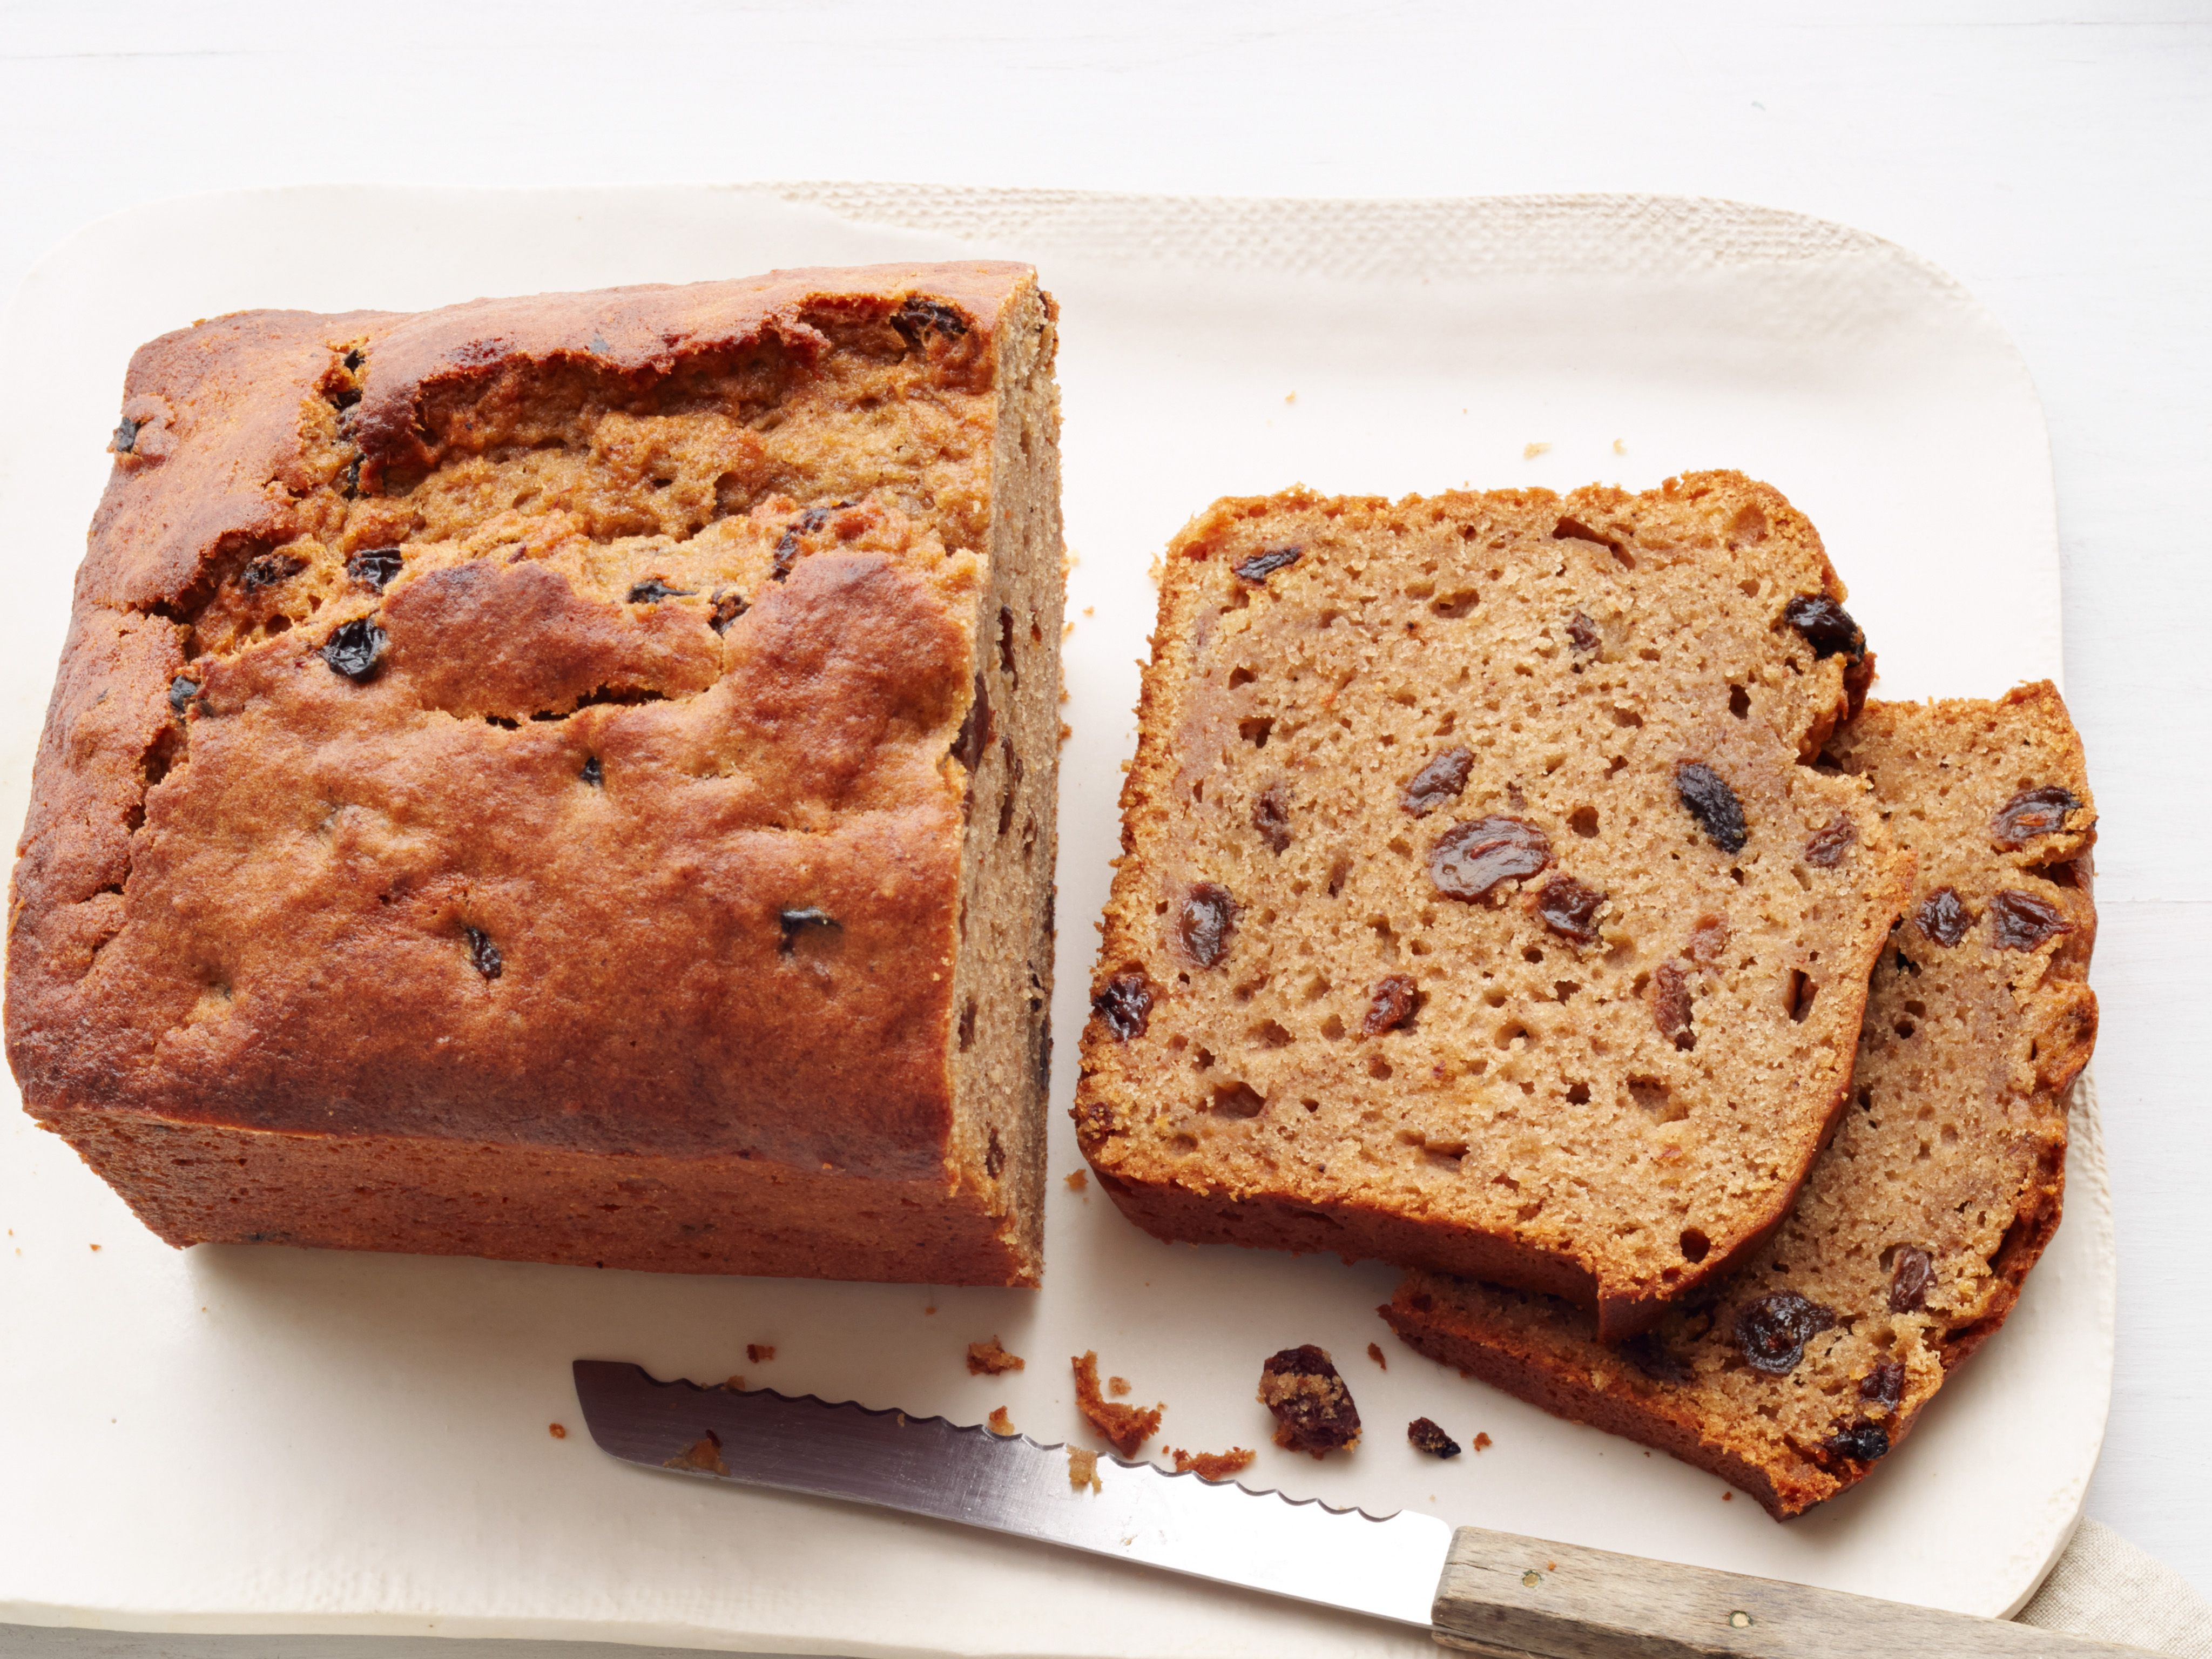 50 quick breads pumpkin chocolate chocolate stout graham think beyond banana bread 50 quick breads food network magazine has dozens of sweet and savory ideas forumfinder Images